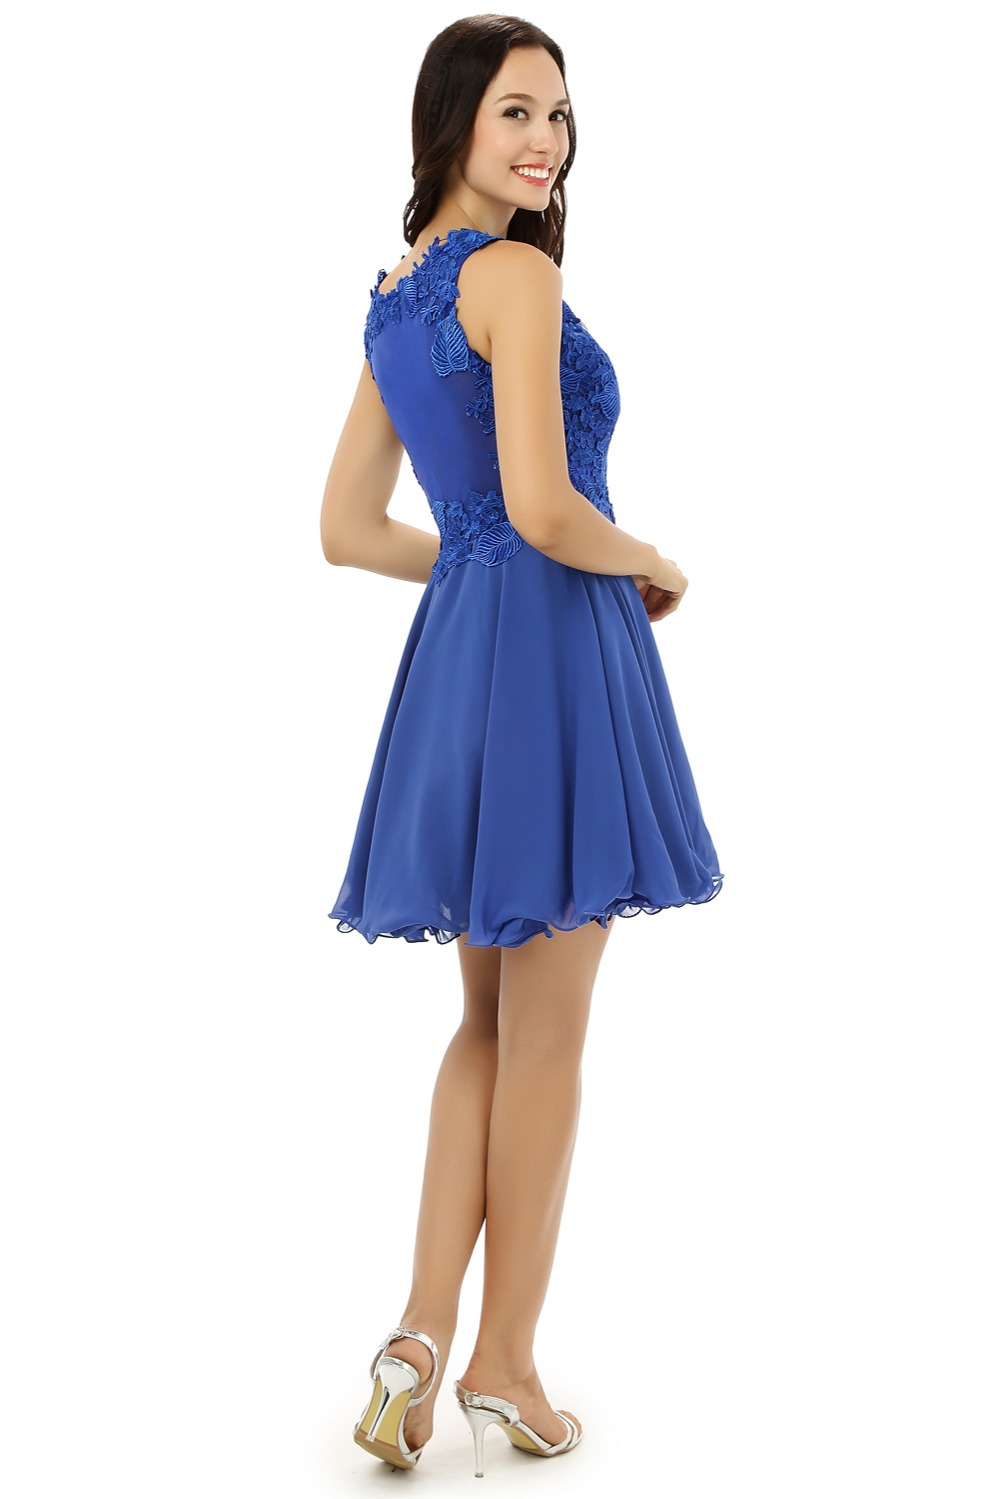 Royal Blue Homecoming Dresses A-line High Collar Organza Lace See Through Short Mini Sparkly Sweet 16 Cocktail Dresses 2018